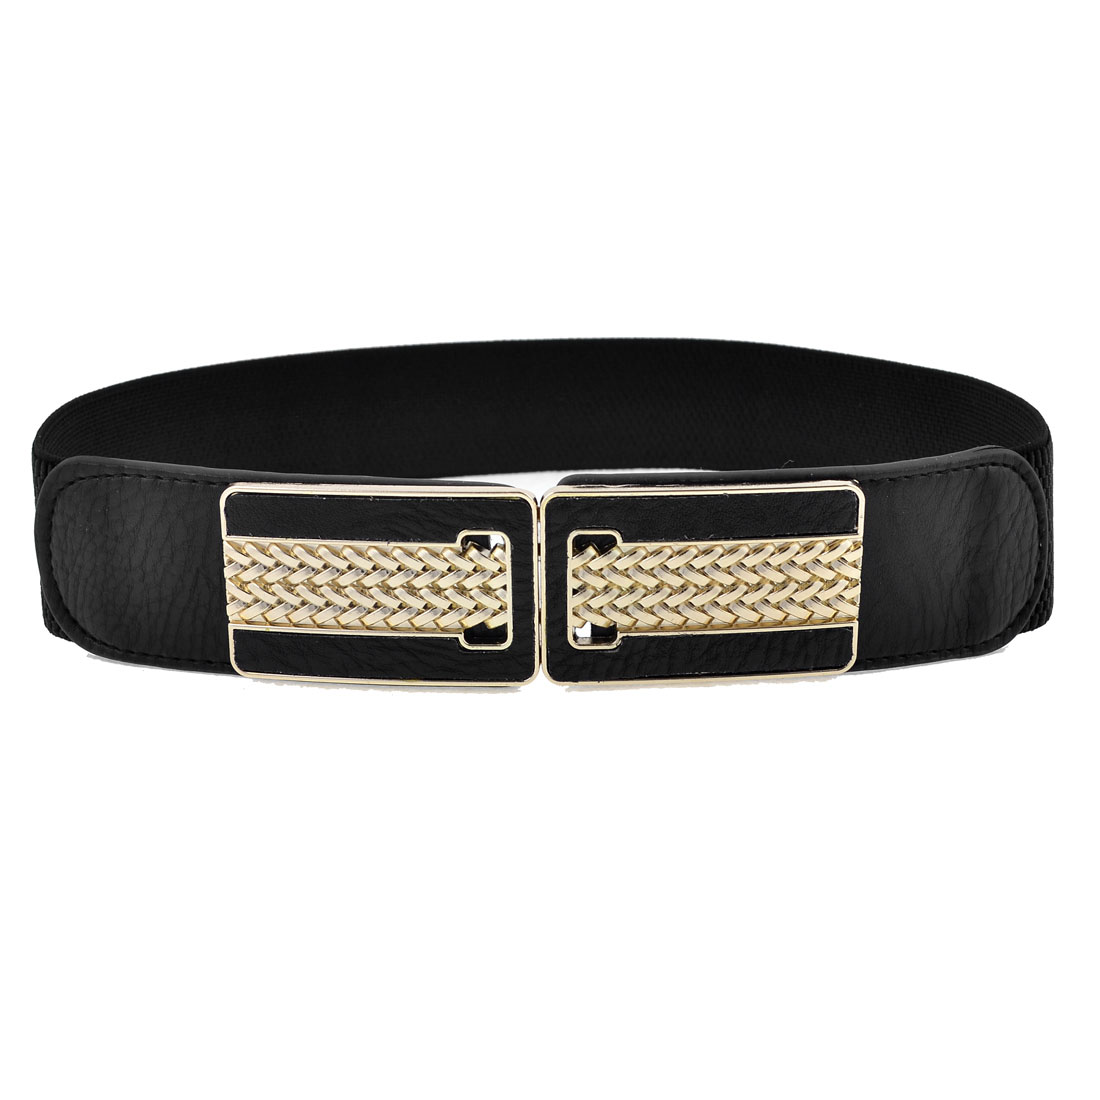 Black Rectangle Shape Woven Pattern Interlock Buckle Elastic Cinch Belt for Lady